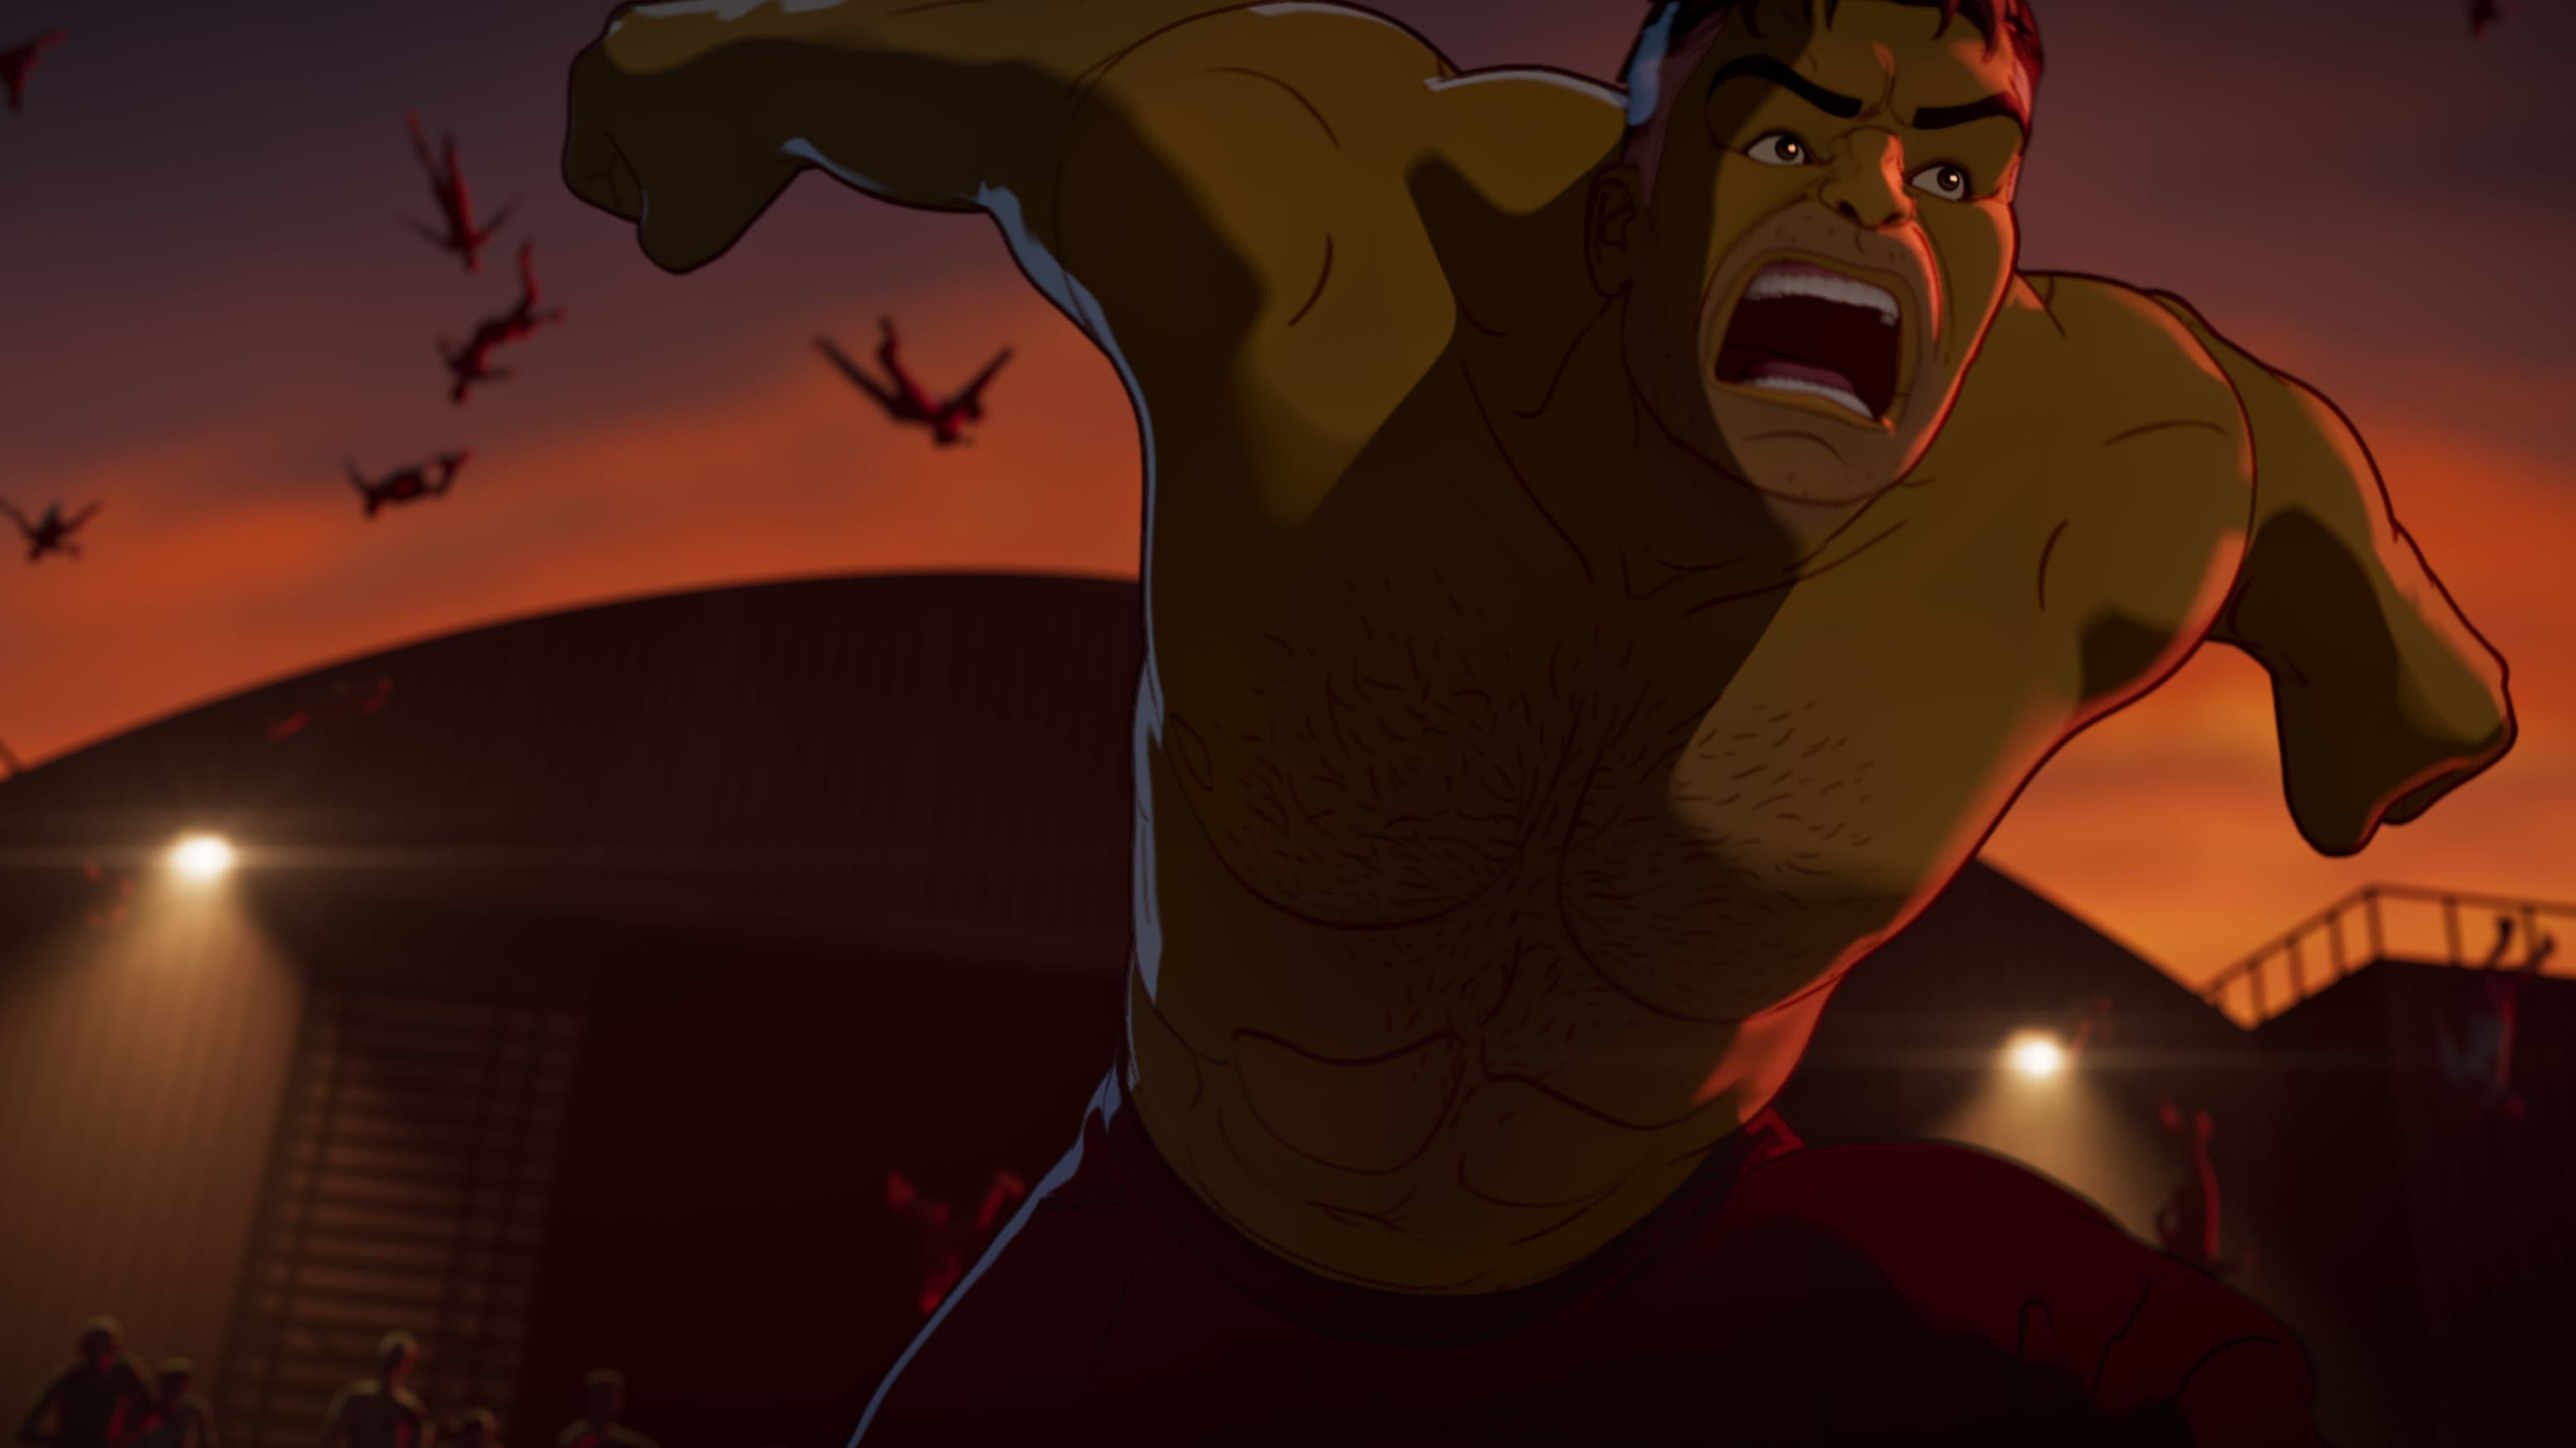 Hulk/Bruce Banner in Marvel Studios' WHAT IF…? exclusively on Disney+. ©Marvel Studios 2021. All Rights Reserved.